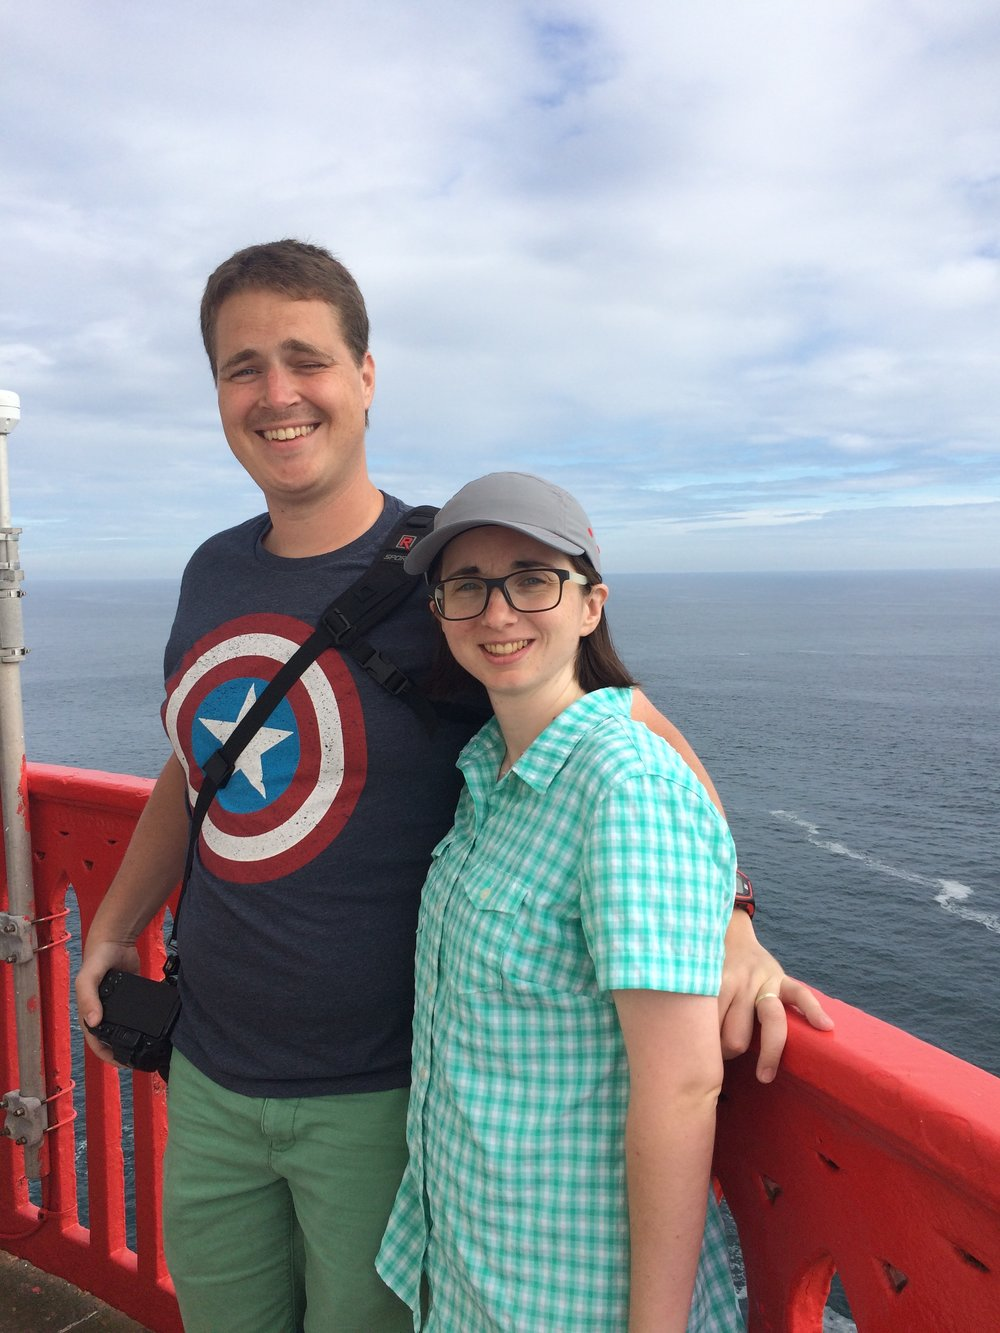 At the Lighthouse - A friendly stranger happily offered to take our photo at the top.  Works out way better than a selfie!